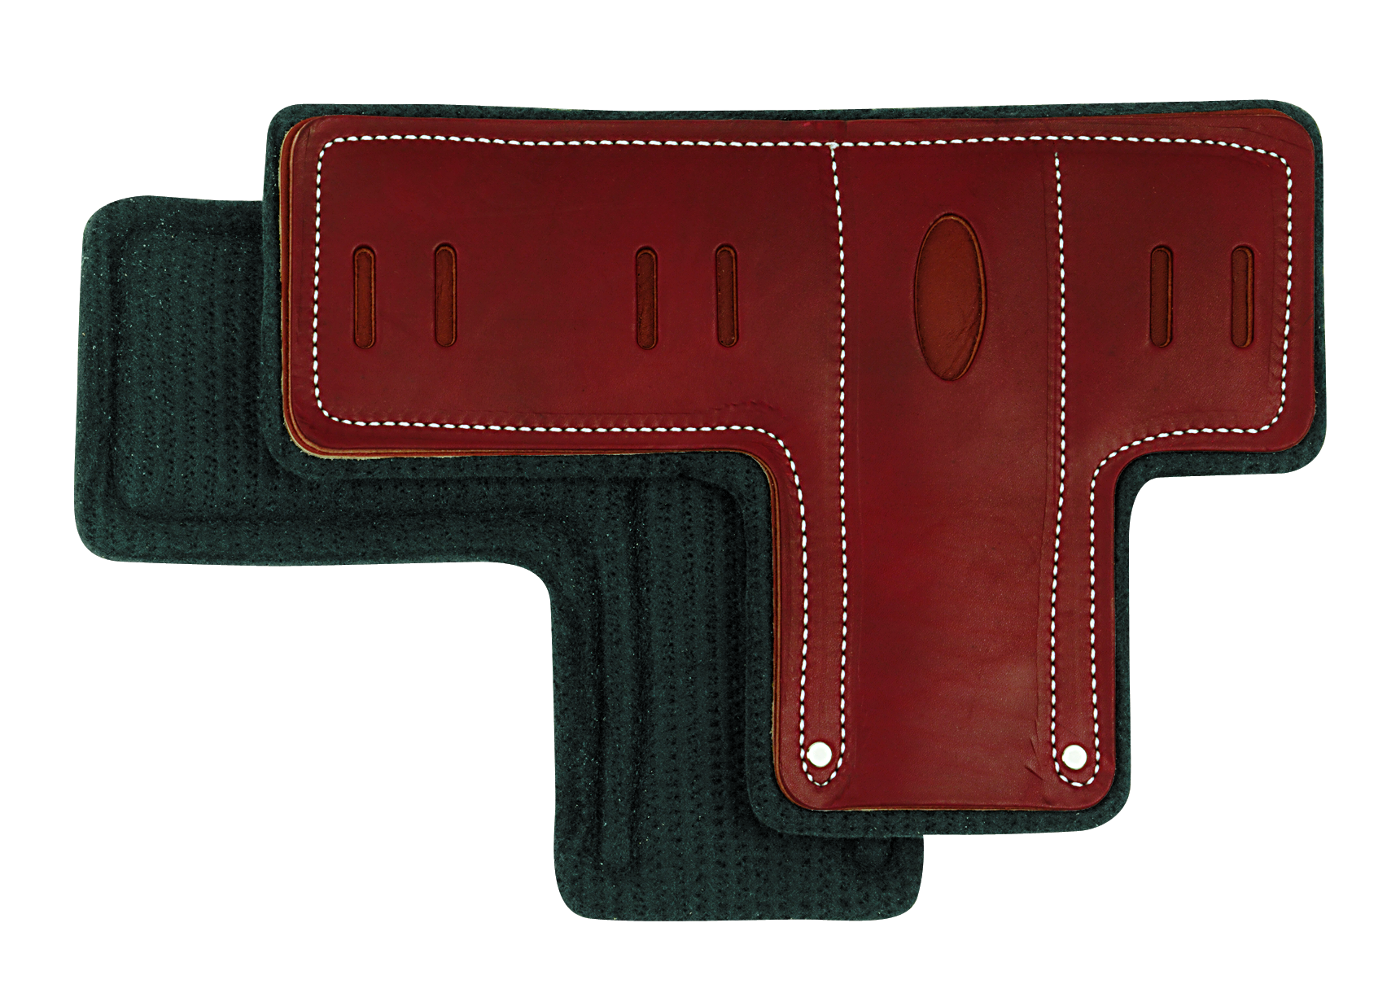 Pair of T-Shaped Climber Pads with Felt Liner WE-08-97156